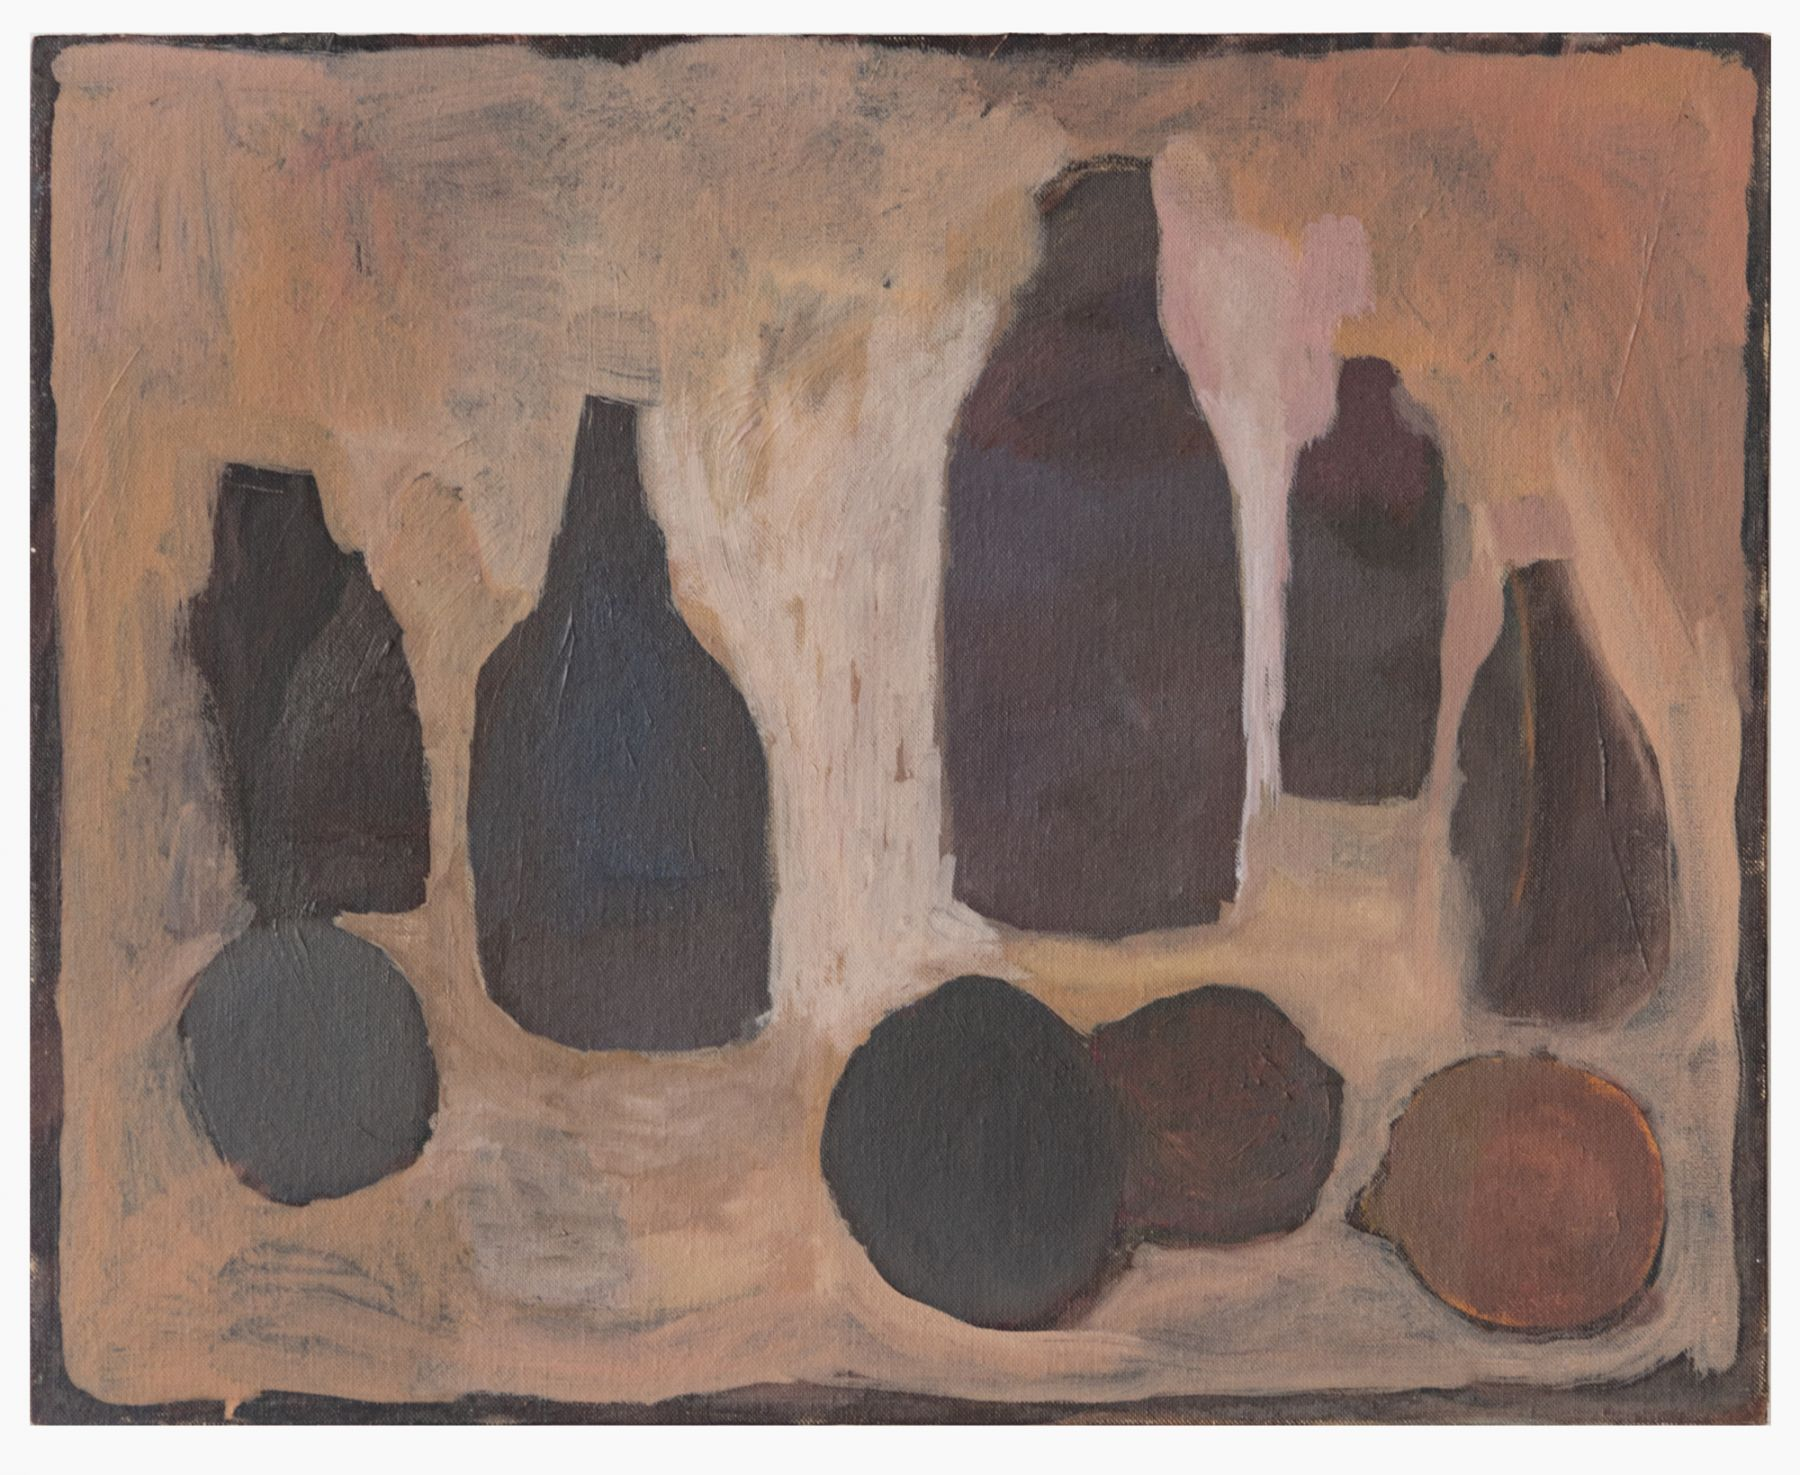 Gedi Sibony, Brown Bottles